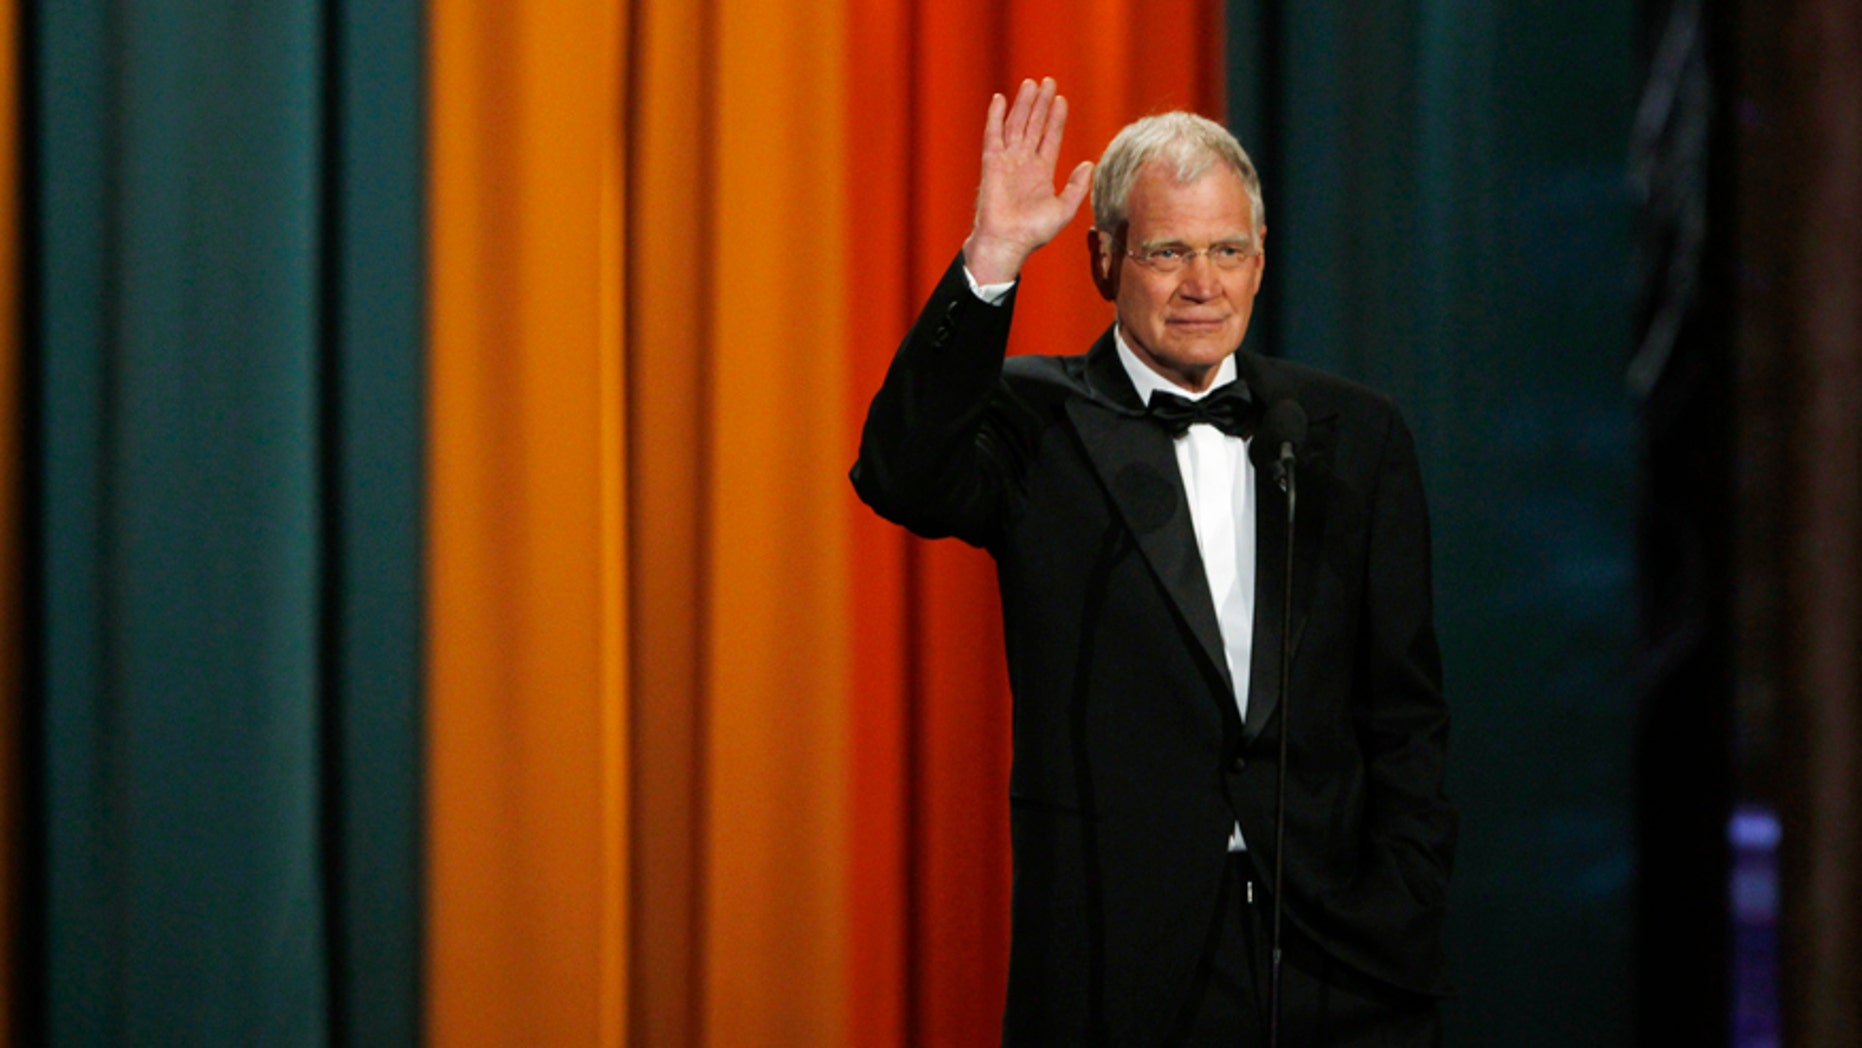 "Late night television host David Letterman waves to the crowd as he accepts The Johnny Carson Award for Comedic Excellence at ""The Comedy Awards"" in New York City March 26, 2011. REUTERS/Jessica Rinaldi (UNITED STATES - Tags: ENTERTAINMENT) - RTR2KGQA"